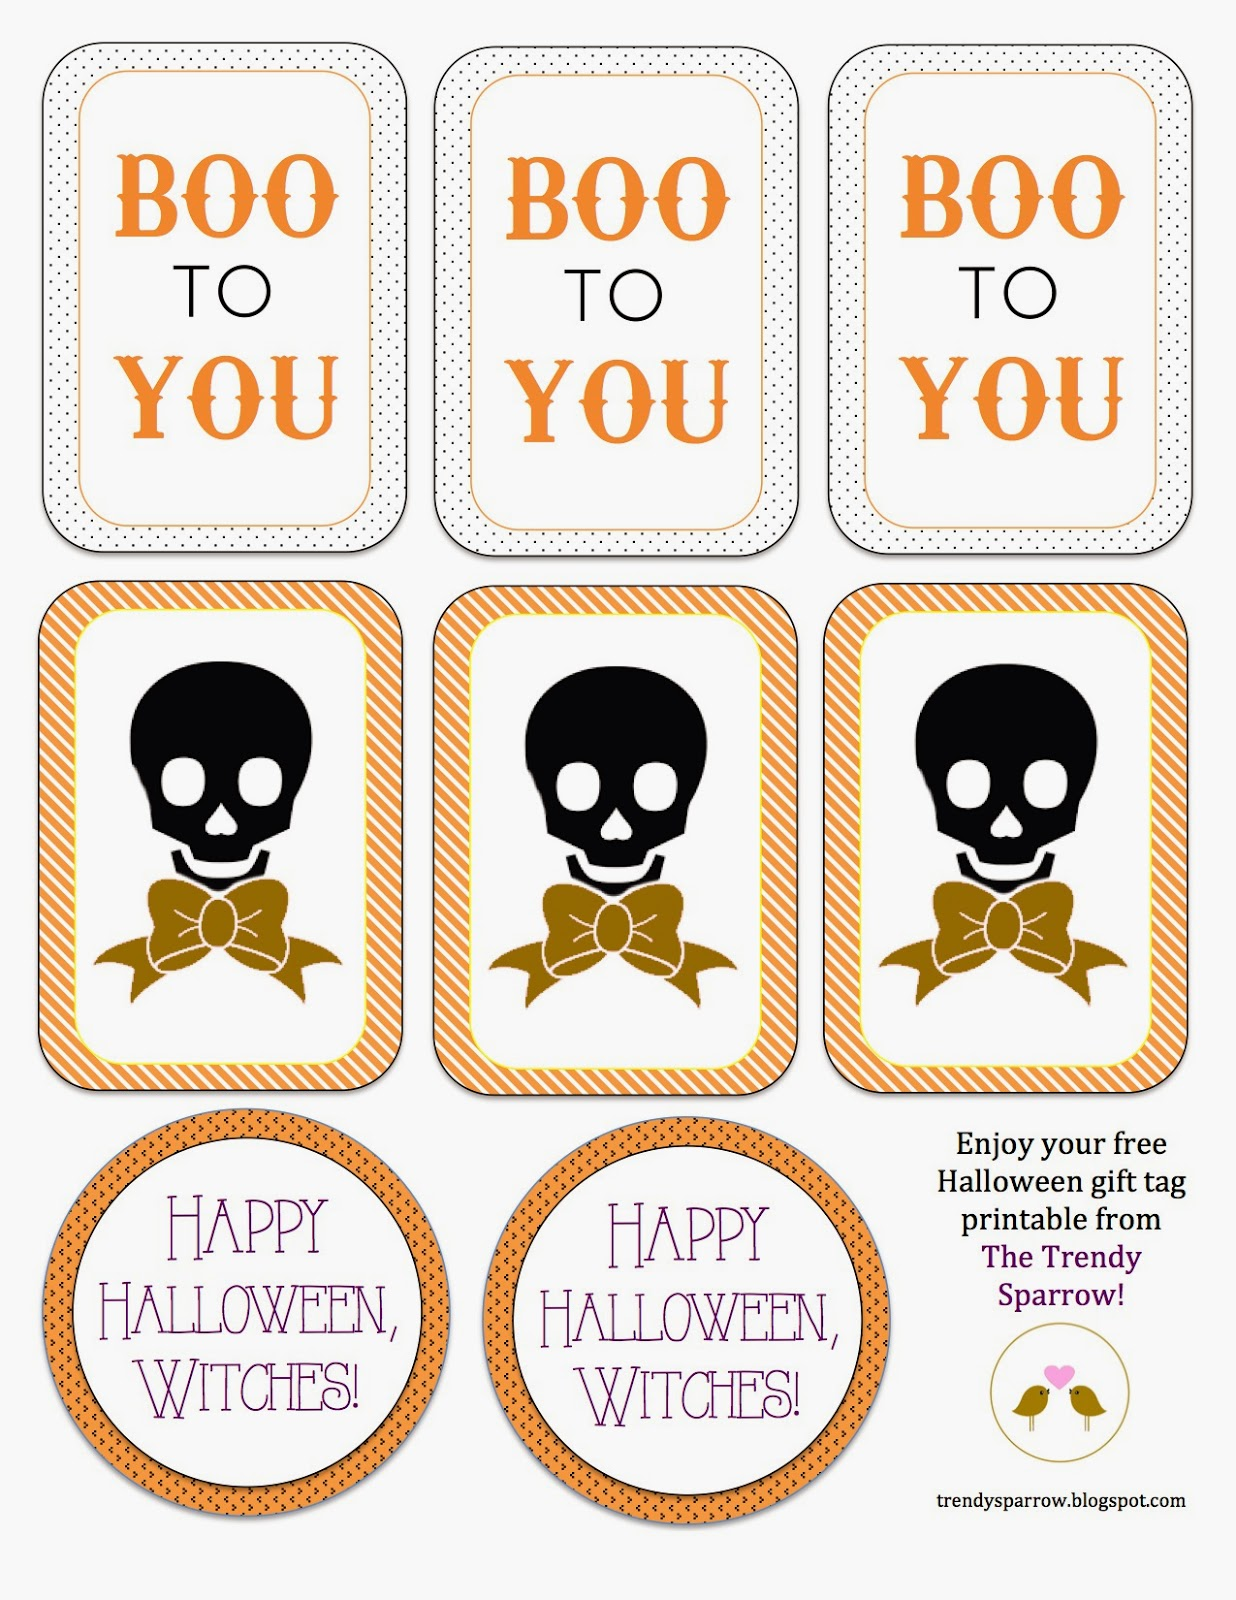 graphic relating to Free Printable Halloween Gift Tags identify The Fashionable Sparrow: No cost Printable: Halloween Reward Tags